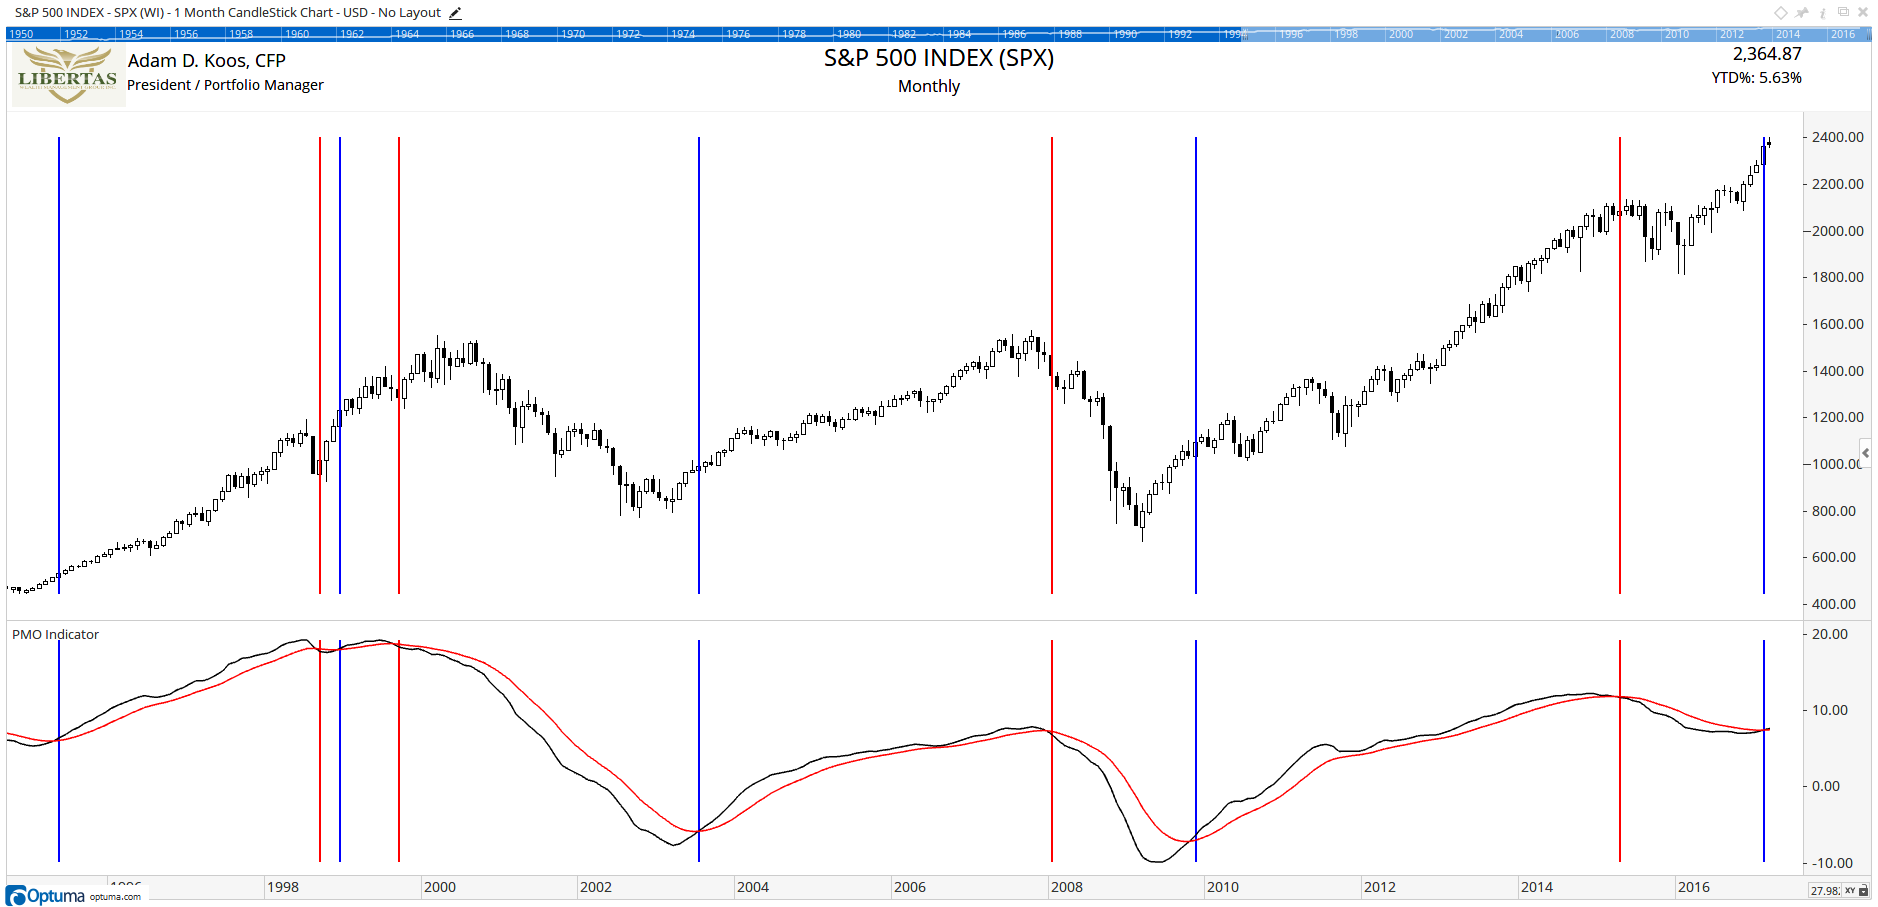 S&P 500 Index (Long-term / Monthly)